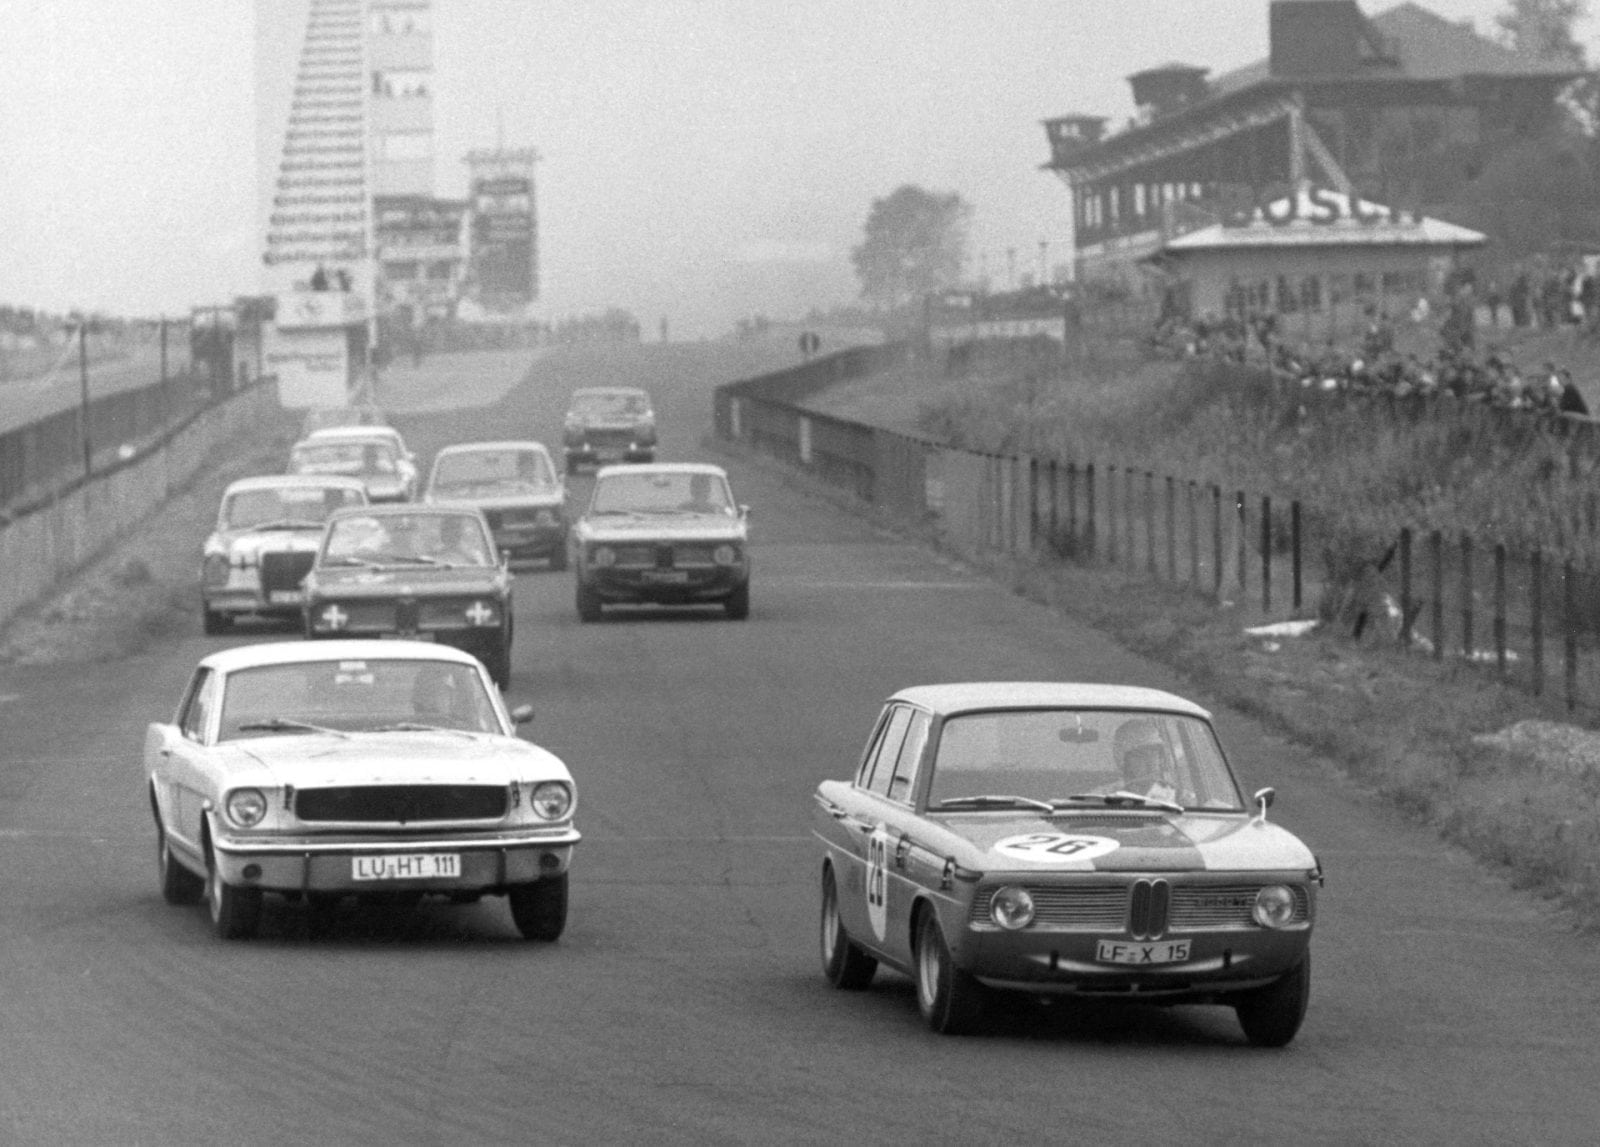 50 Years of BMW New Class, BMW 2000 TI at the Nürburgring 1966 (03/2011)